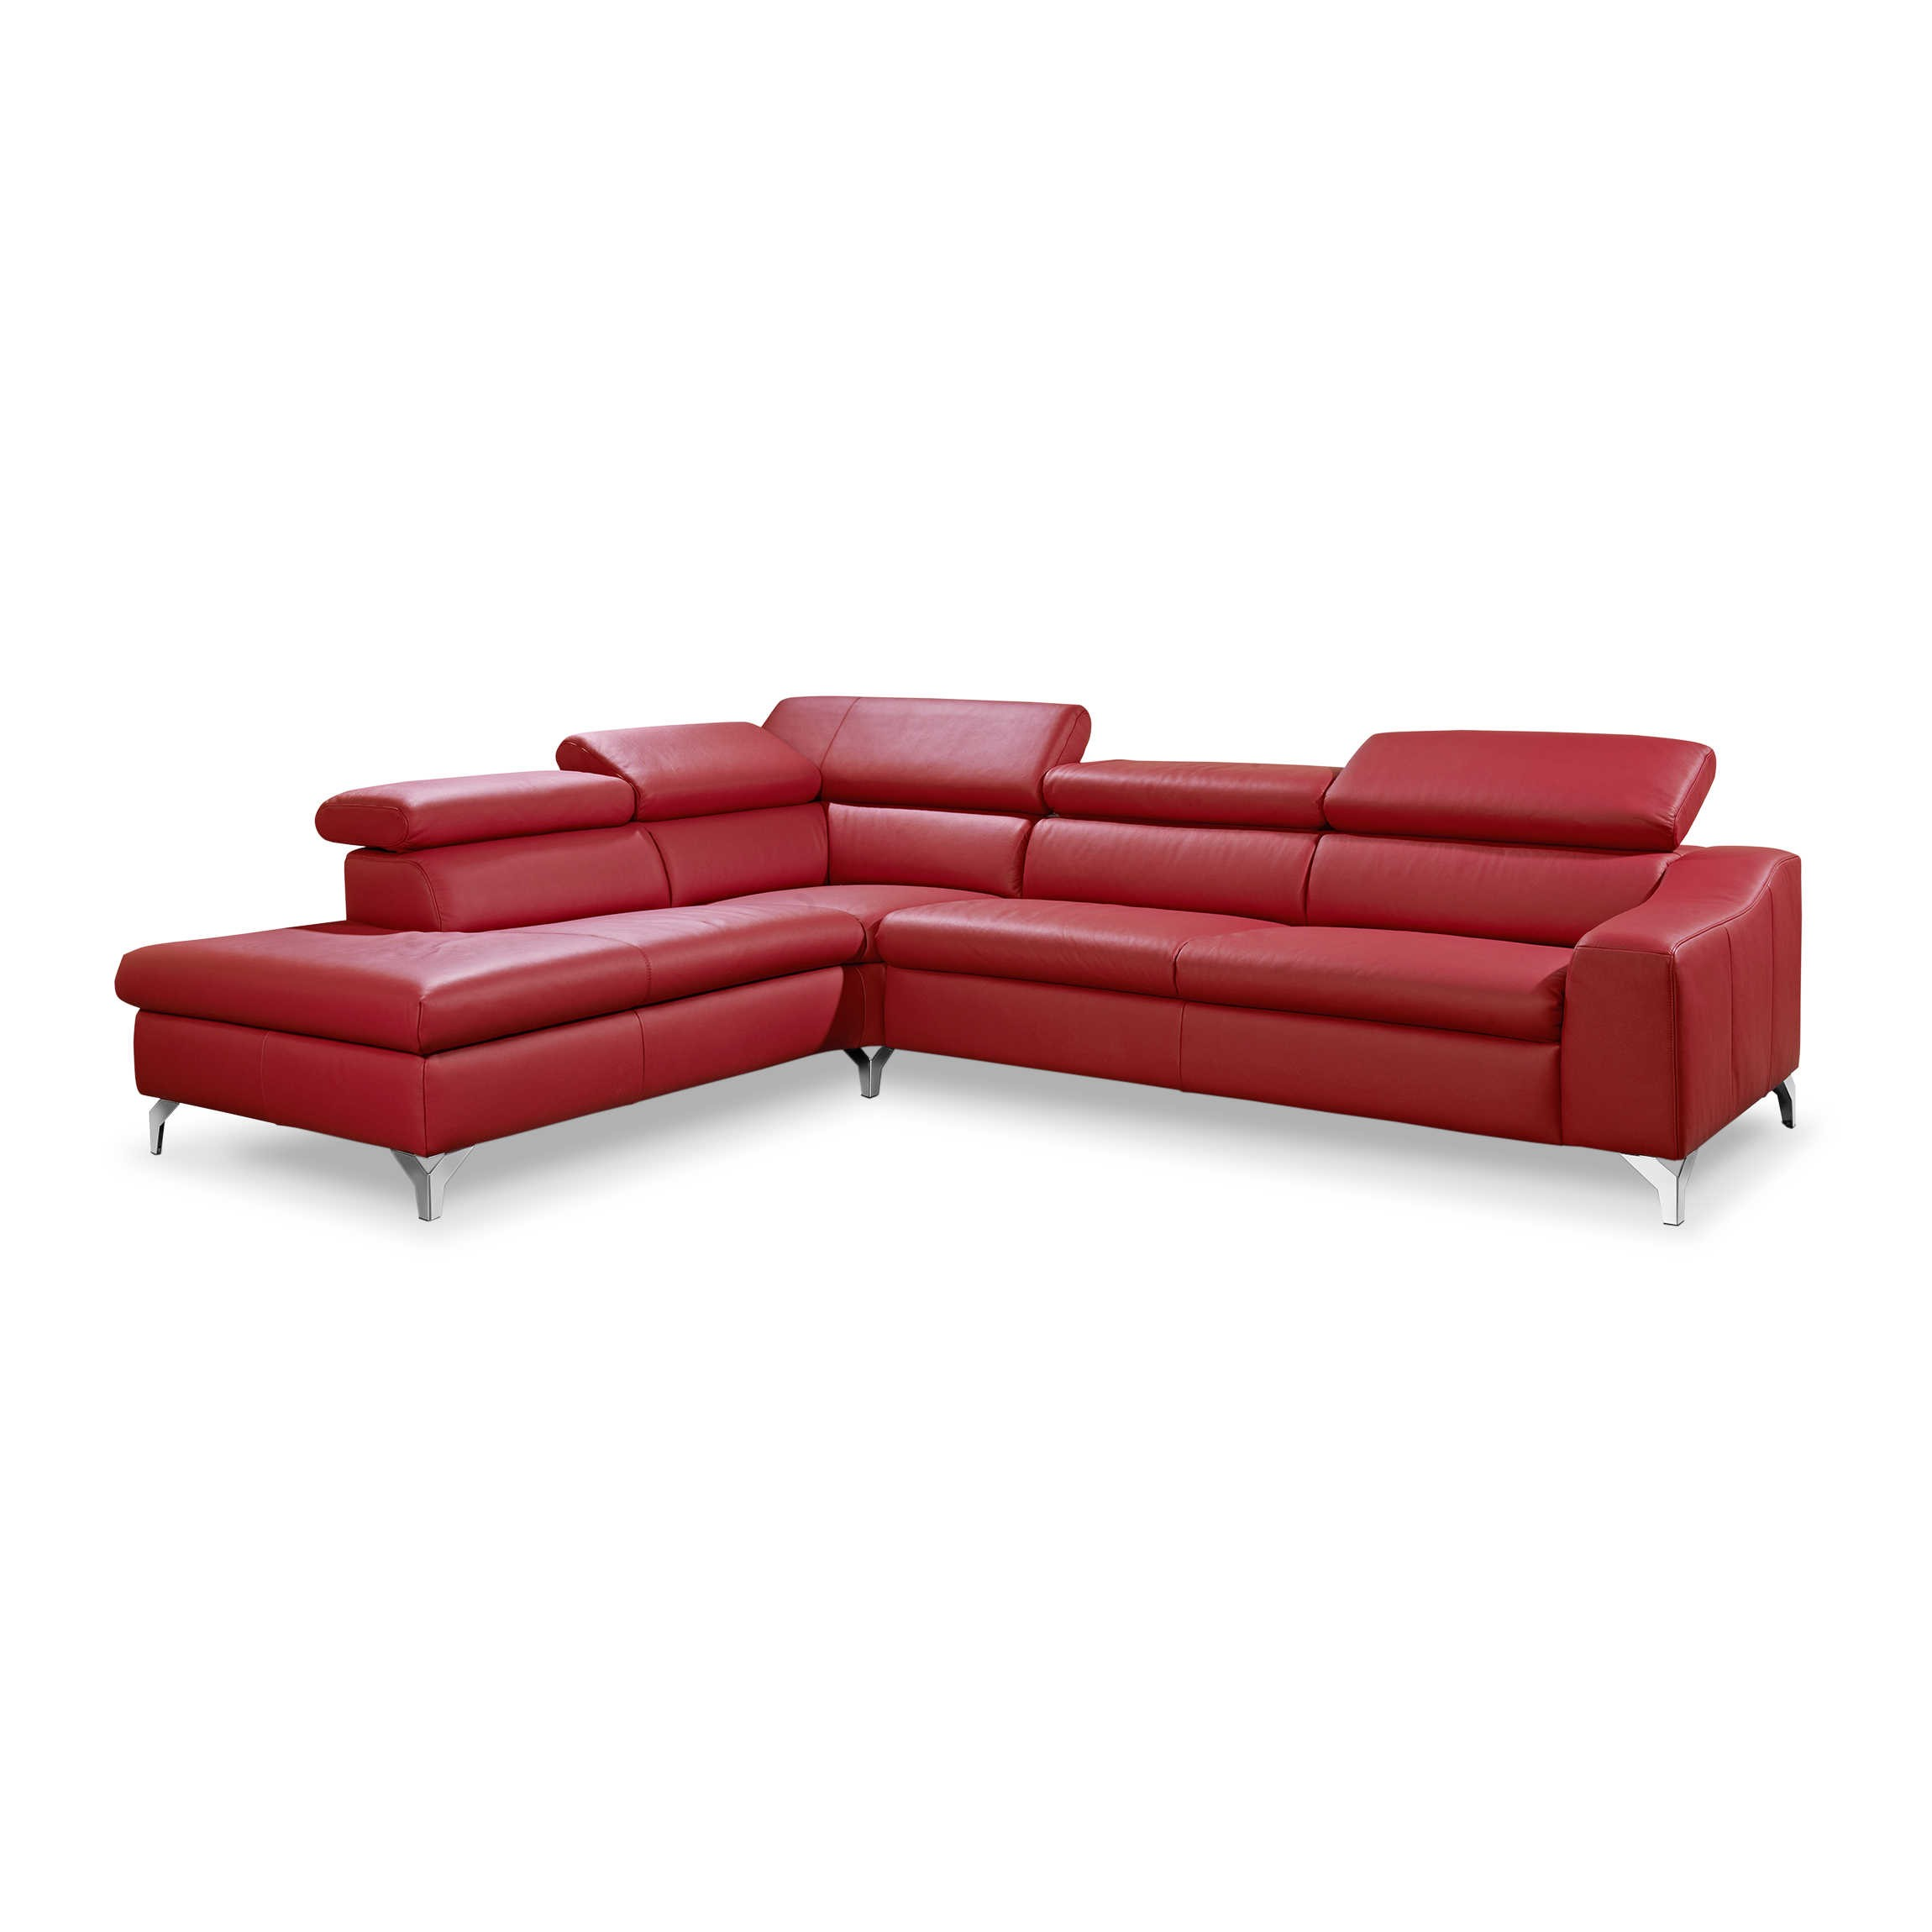 musterring ecksofa mr 4775 rot leder online kaufen bei woonio. Black Bedroom Furniture Sets. Home Design Ideas